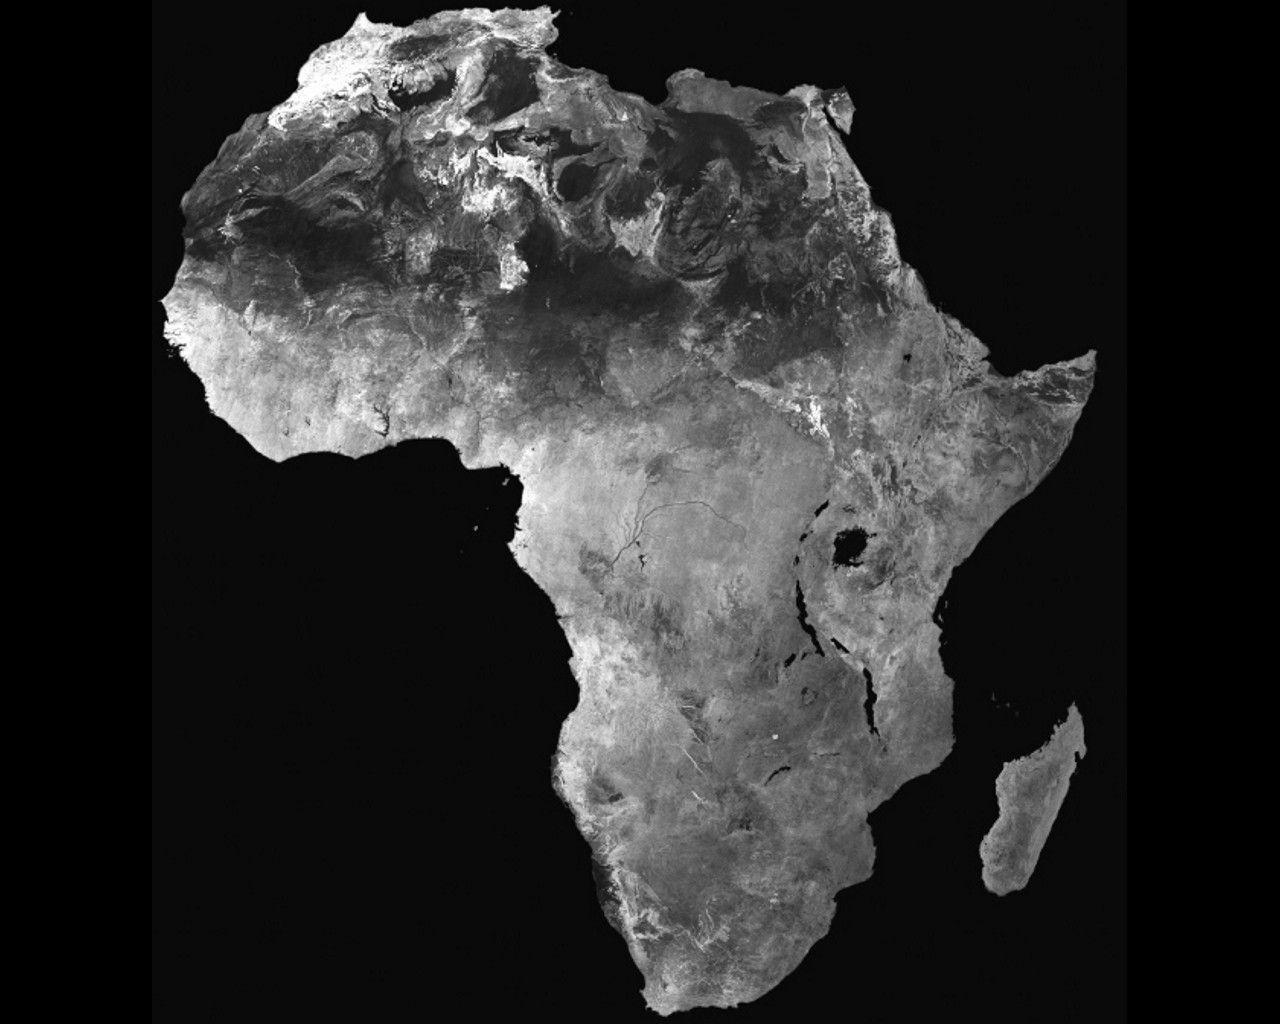 Africa Map Wallpapers 1280x1024